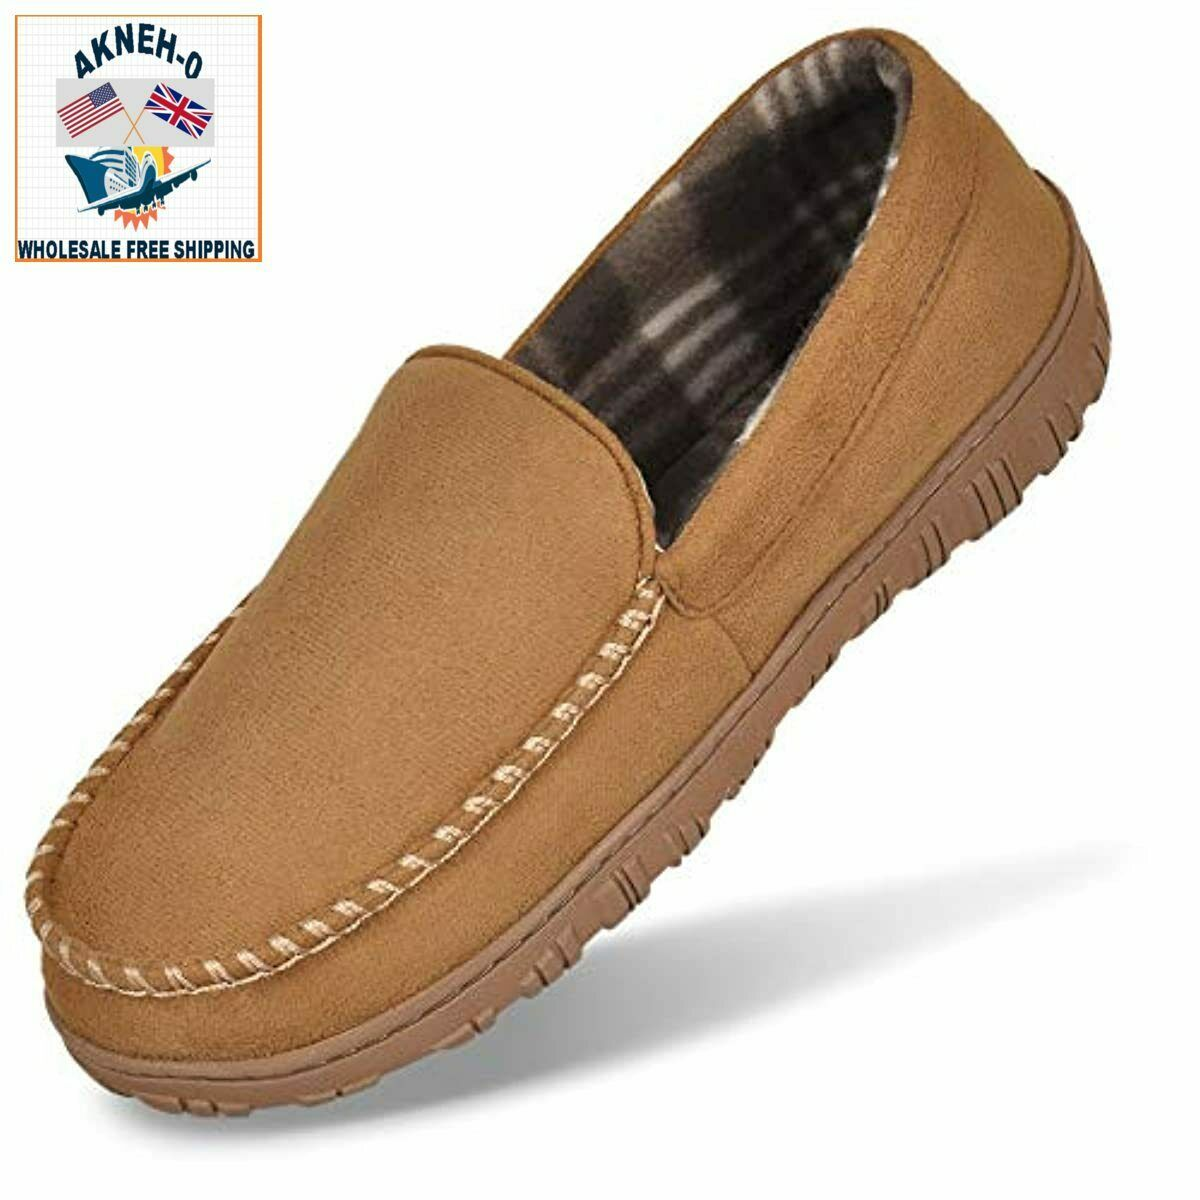 MIXIN Men's Suede Memory Foam Moccasin Slippers Size 8 Loafers House Shoes Light